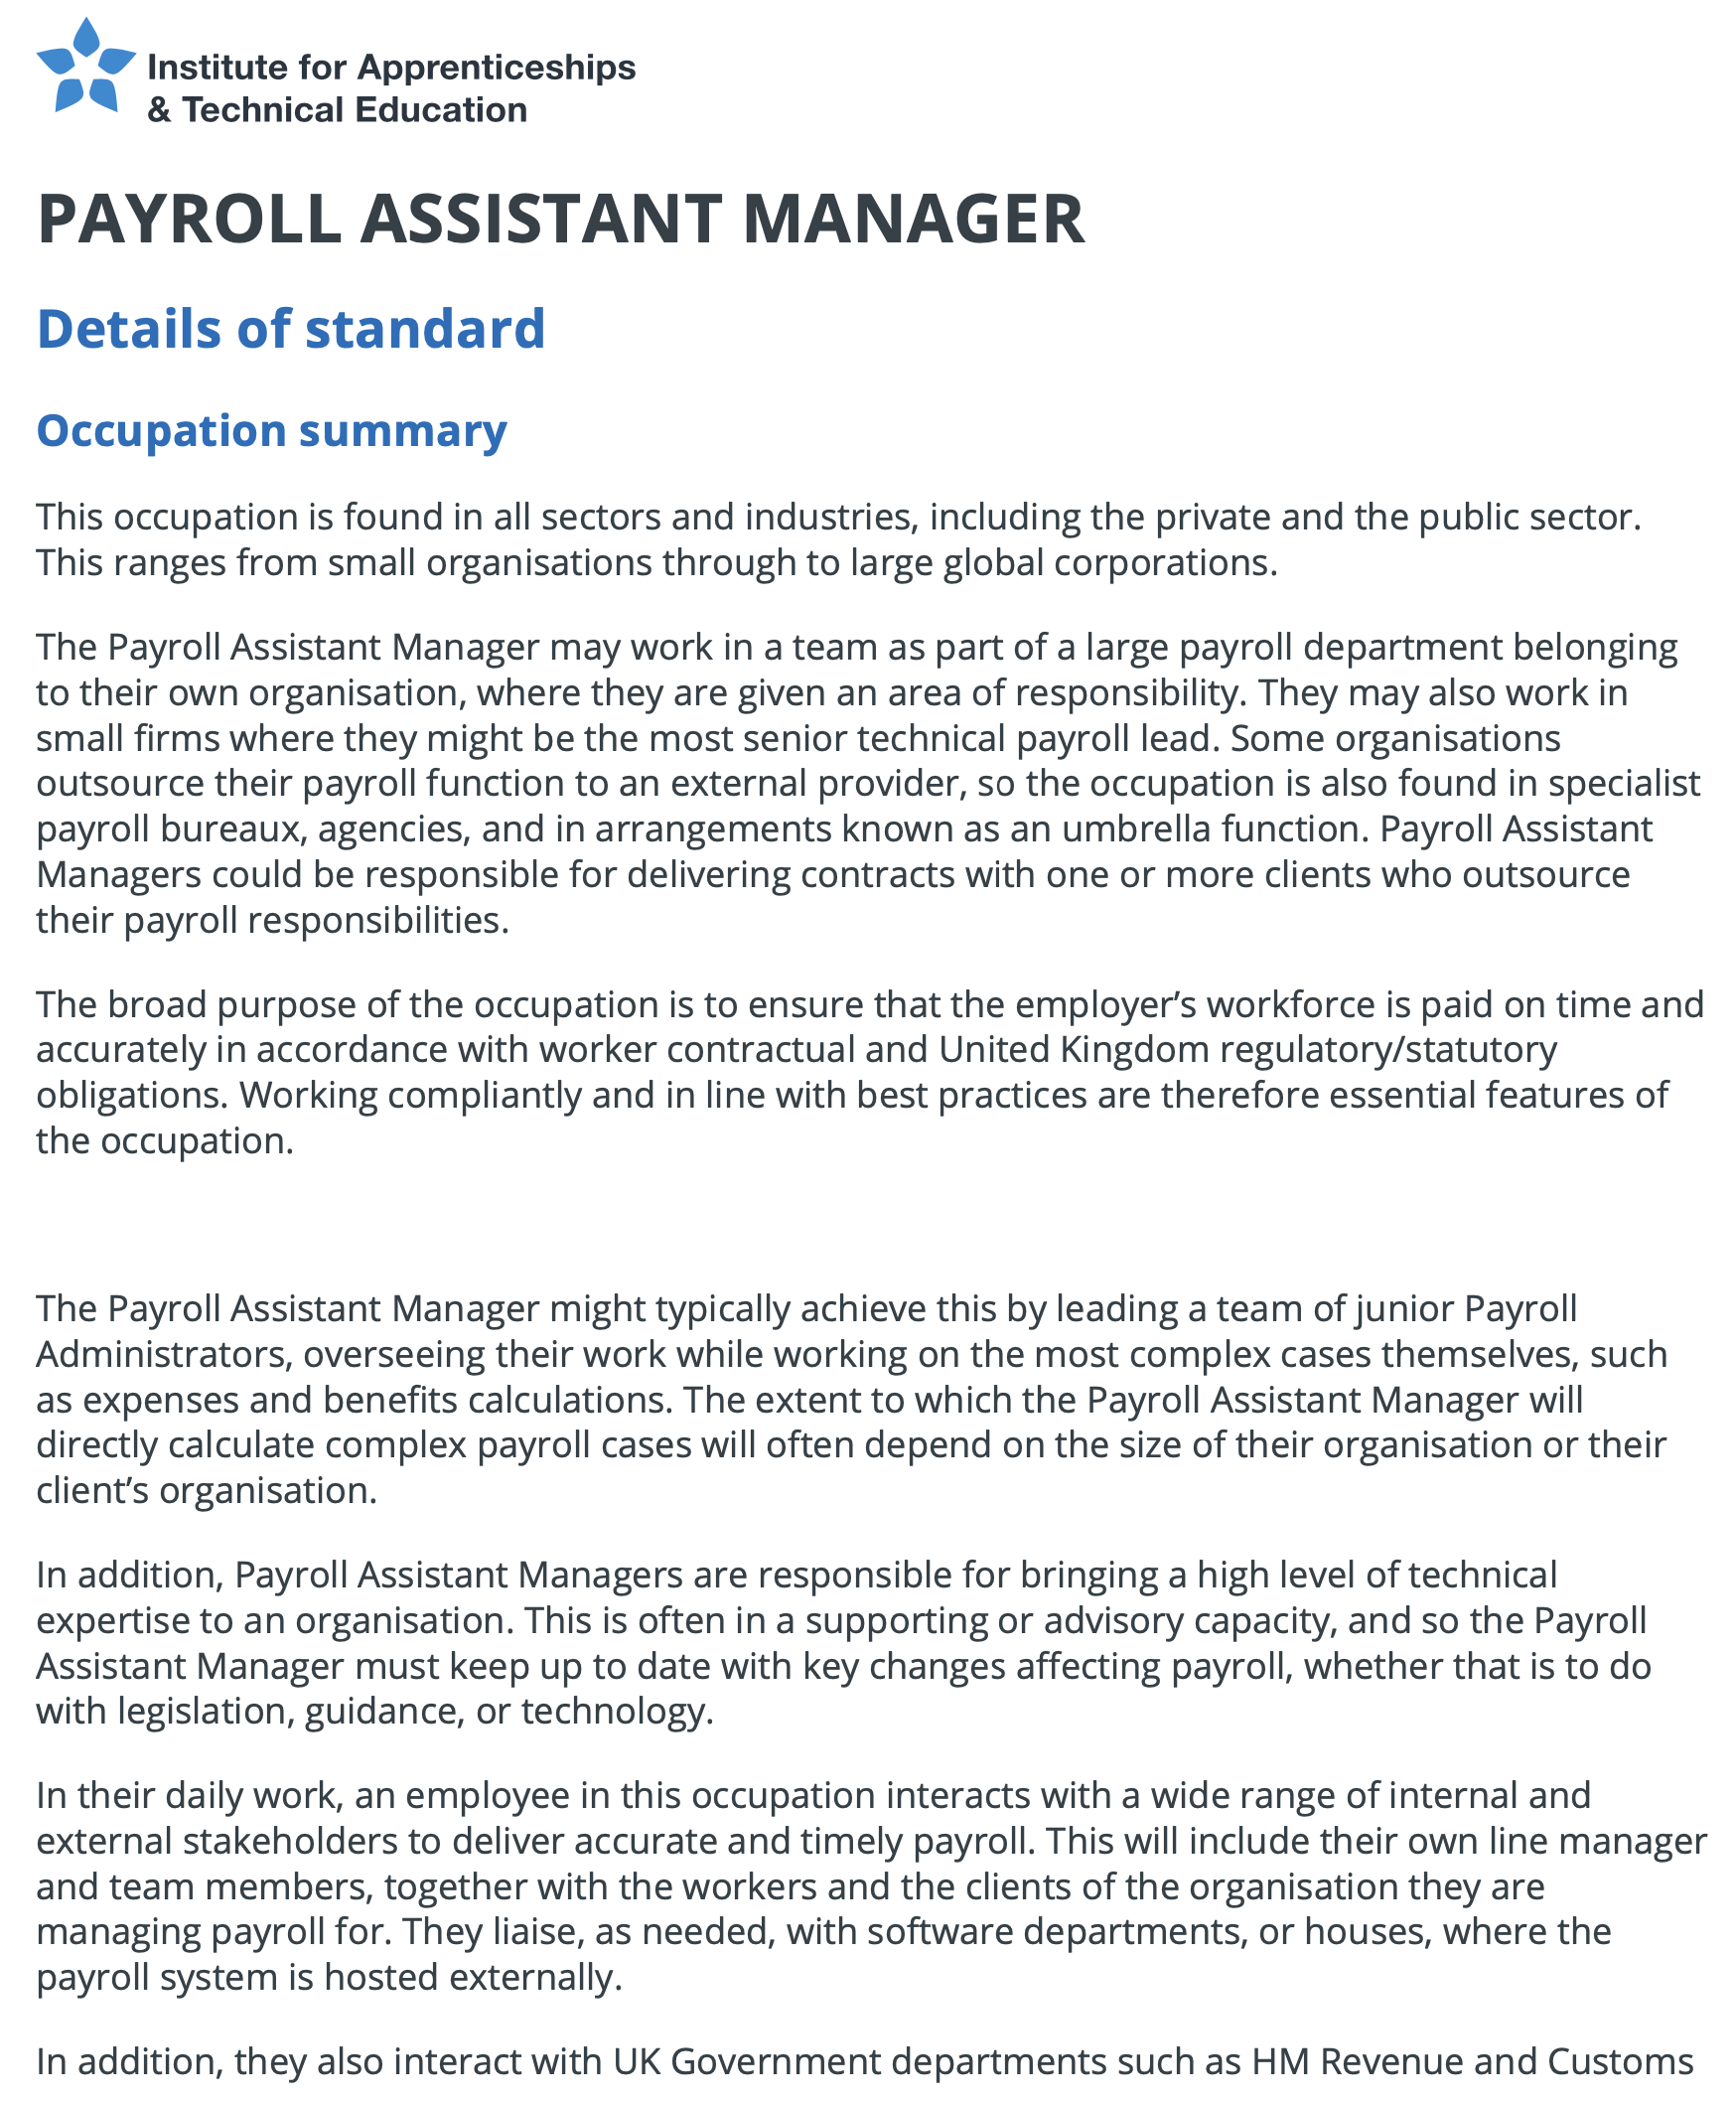 Payroll assistant manager.pdf